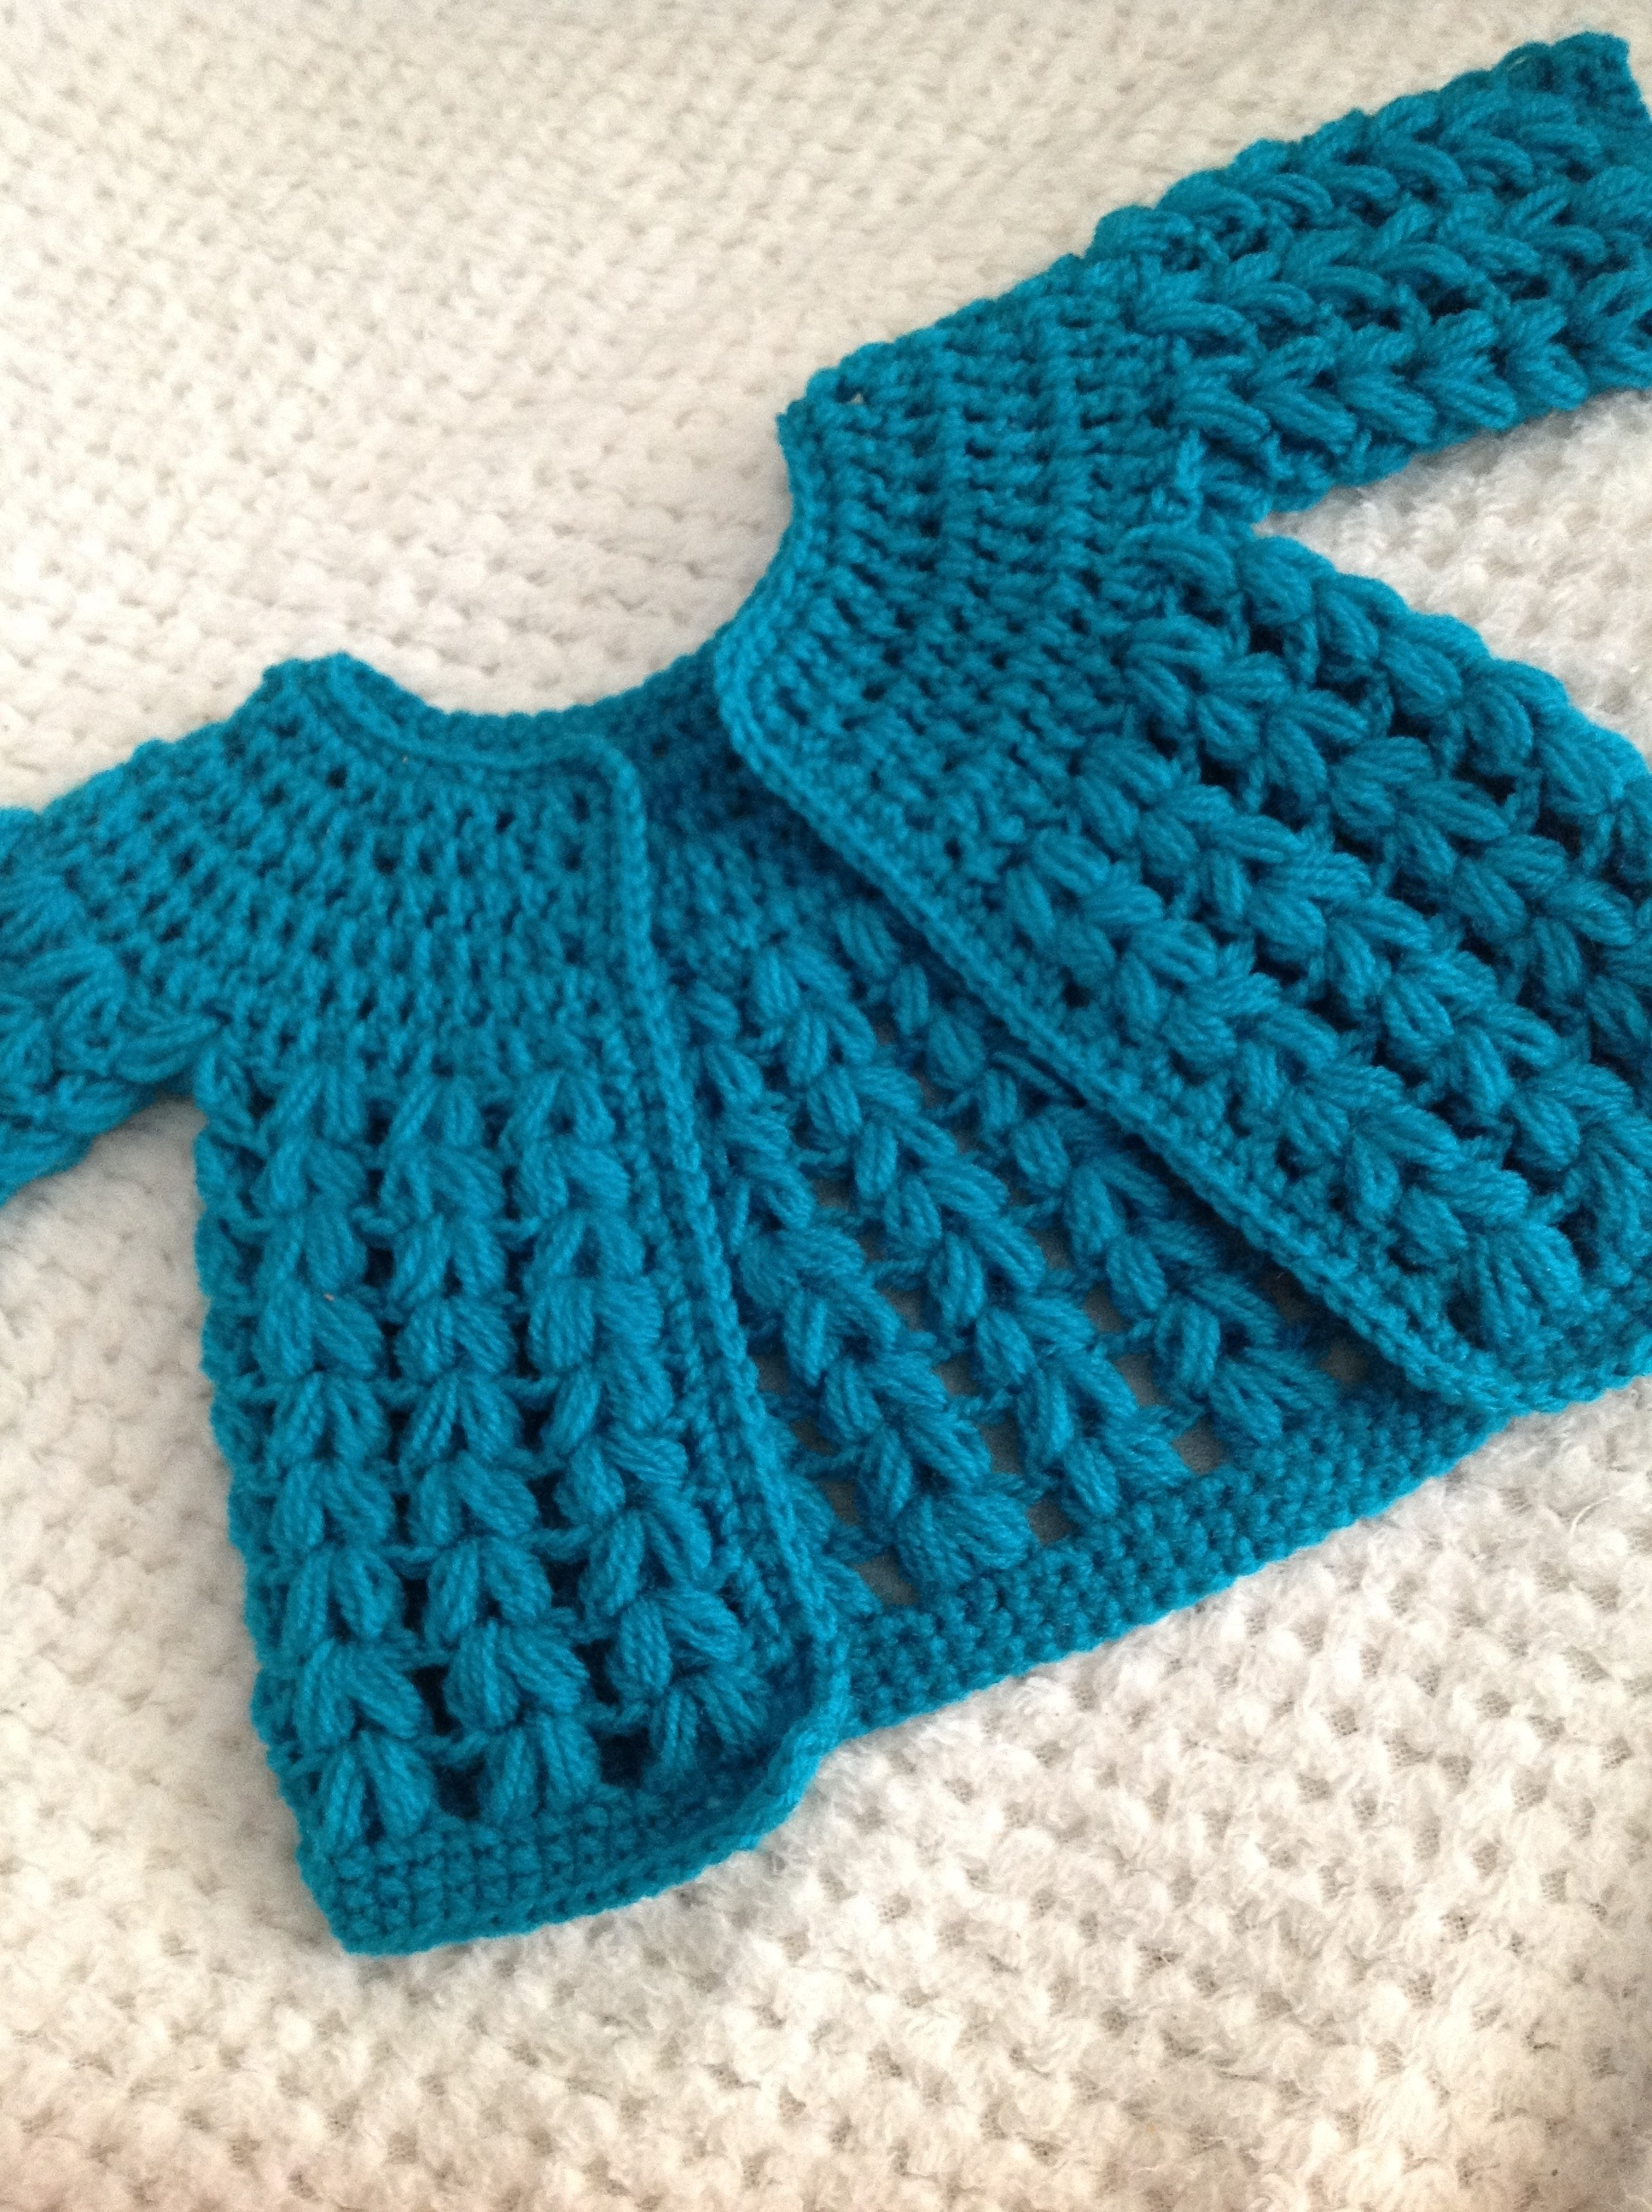 Crochet Baby Sweater : Free crochet cardigan pattern ? Slightly adapted for the ?catwalk ...